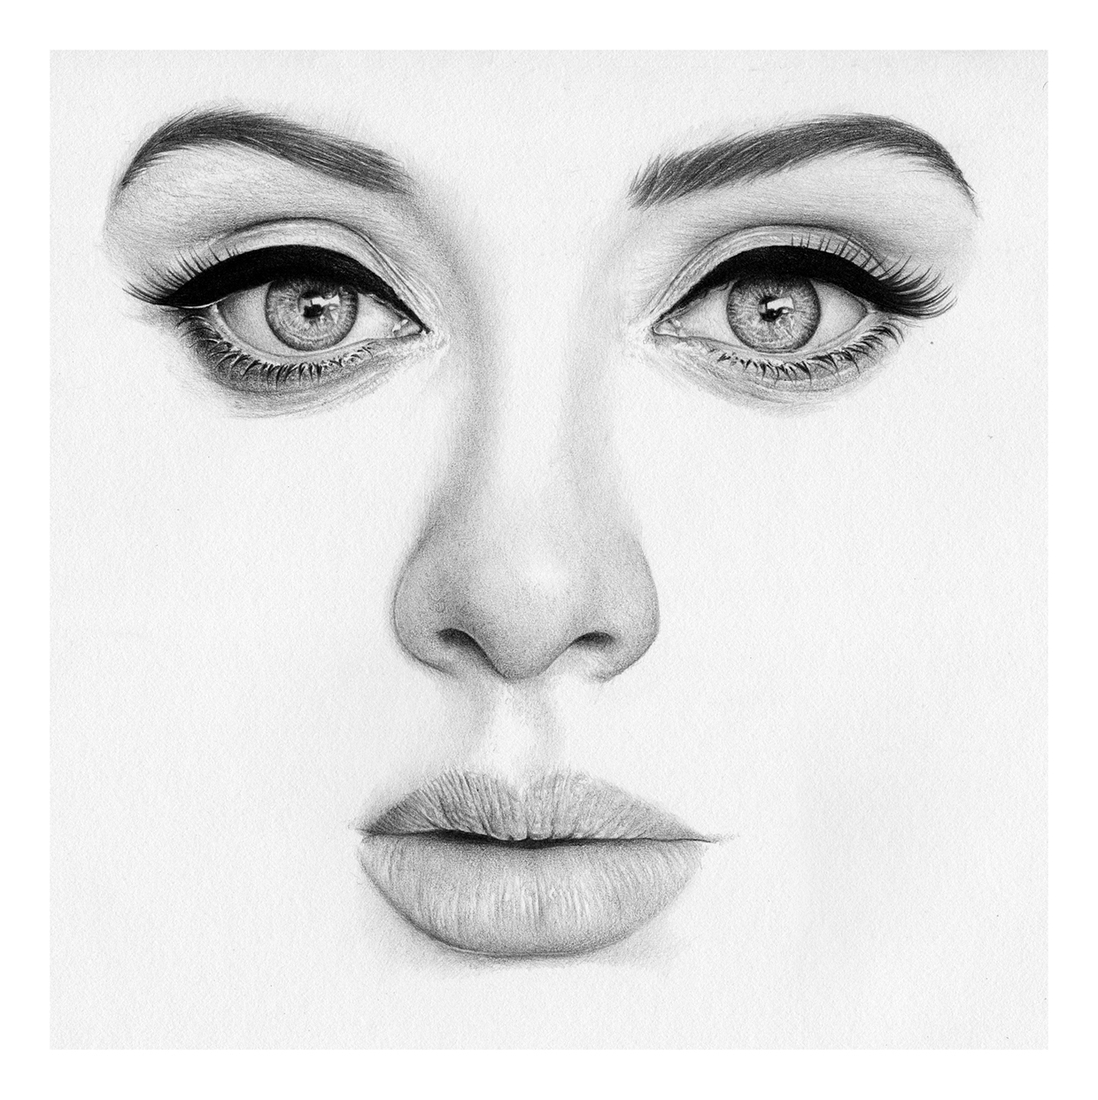 05-TS-Abe-Drawings-of-Minimalist-Hyper-Realistic-Portraits-www-designstack-co